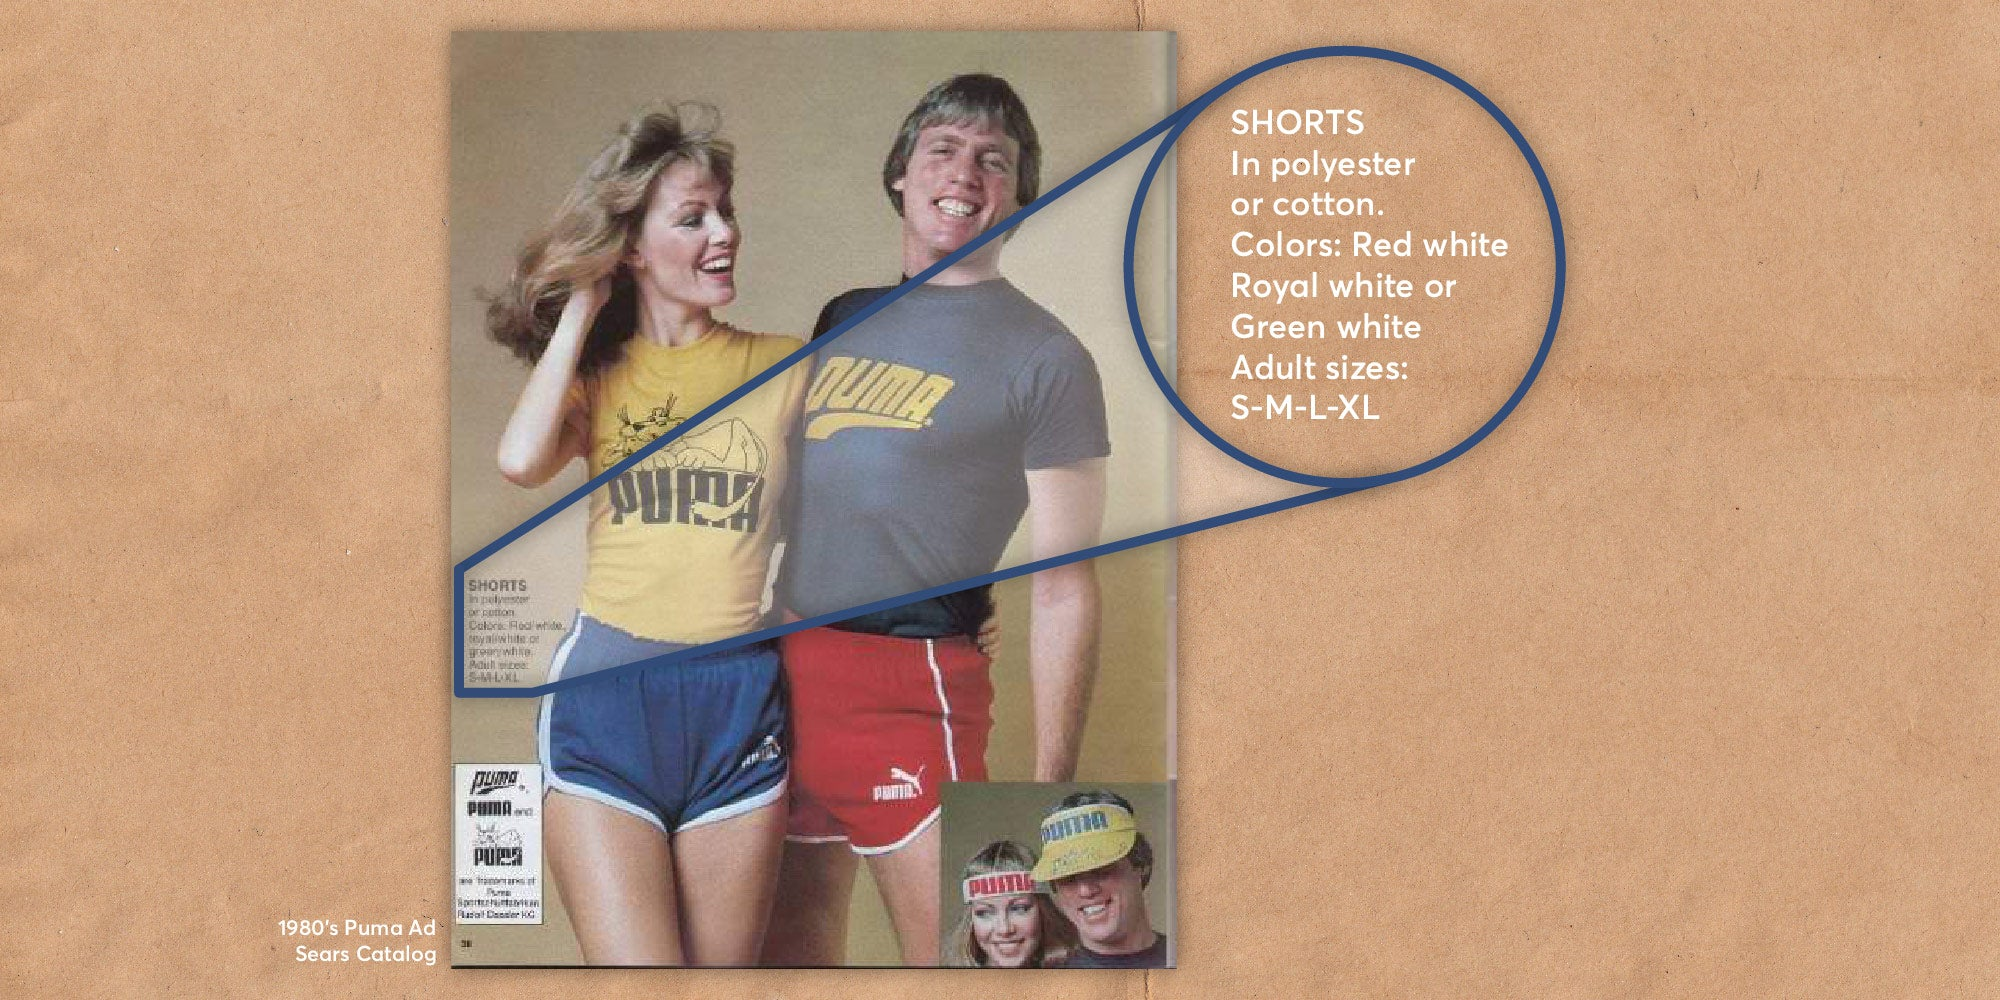 1980s puma running outfit advertisement from sears catalog